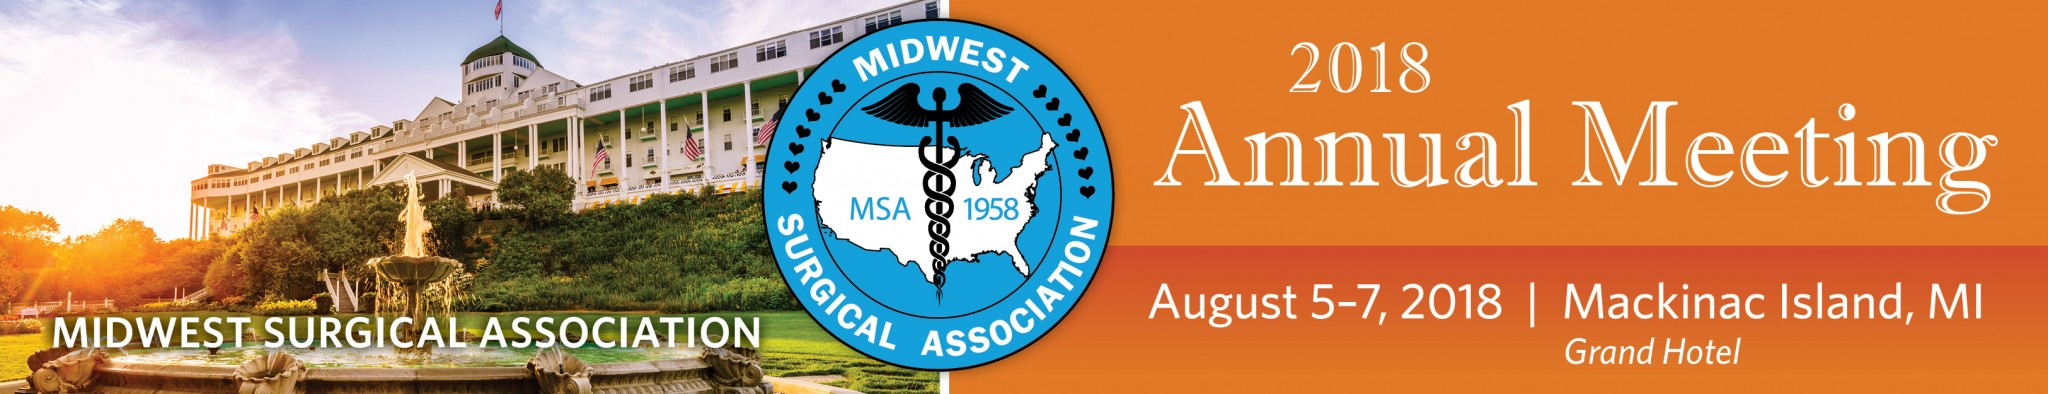 MSA 2018 Annual Meeting